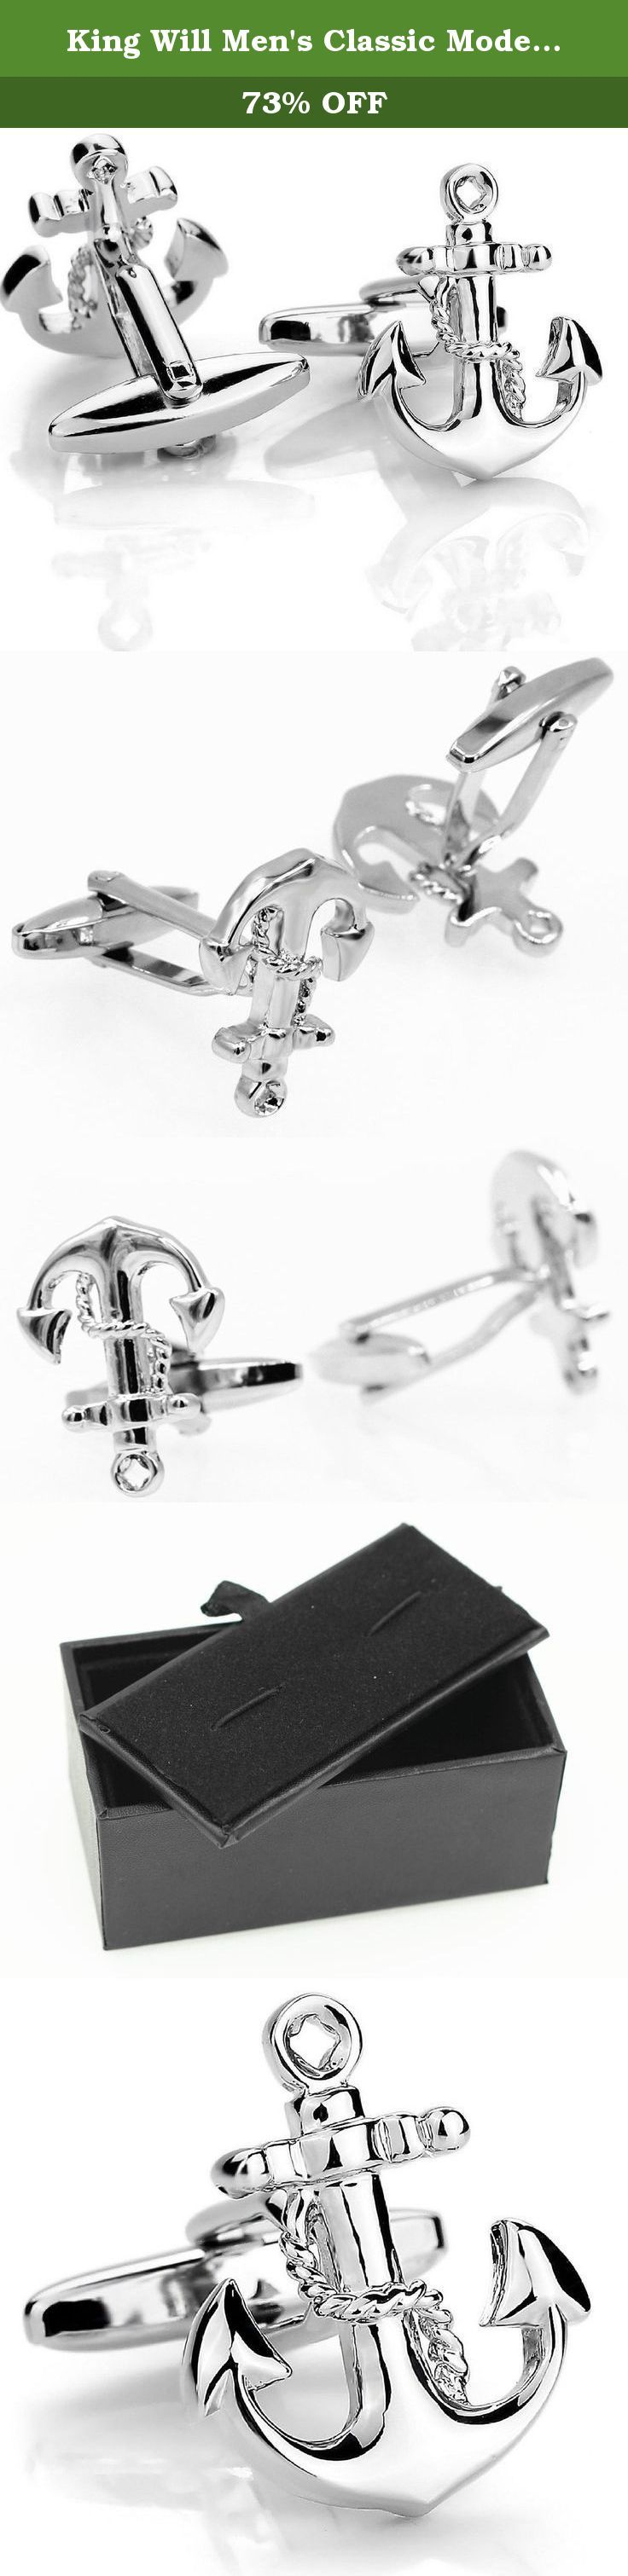 King Will Men's Classic Modern Anchor Seaman Ornate Wedding Shirts Cufflinks 1 Pair Set(DC-C001). Find a special gift for a loved one or a beautiful piece that complements your personal style with jewelry from the King Will.Also, Find yourself. These Cufflinks are superb selection featured in the King Will offers great values at affordable Price.